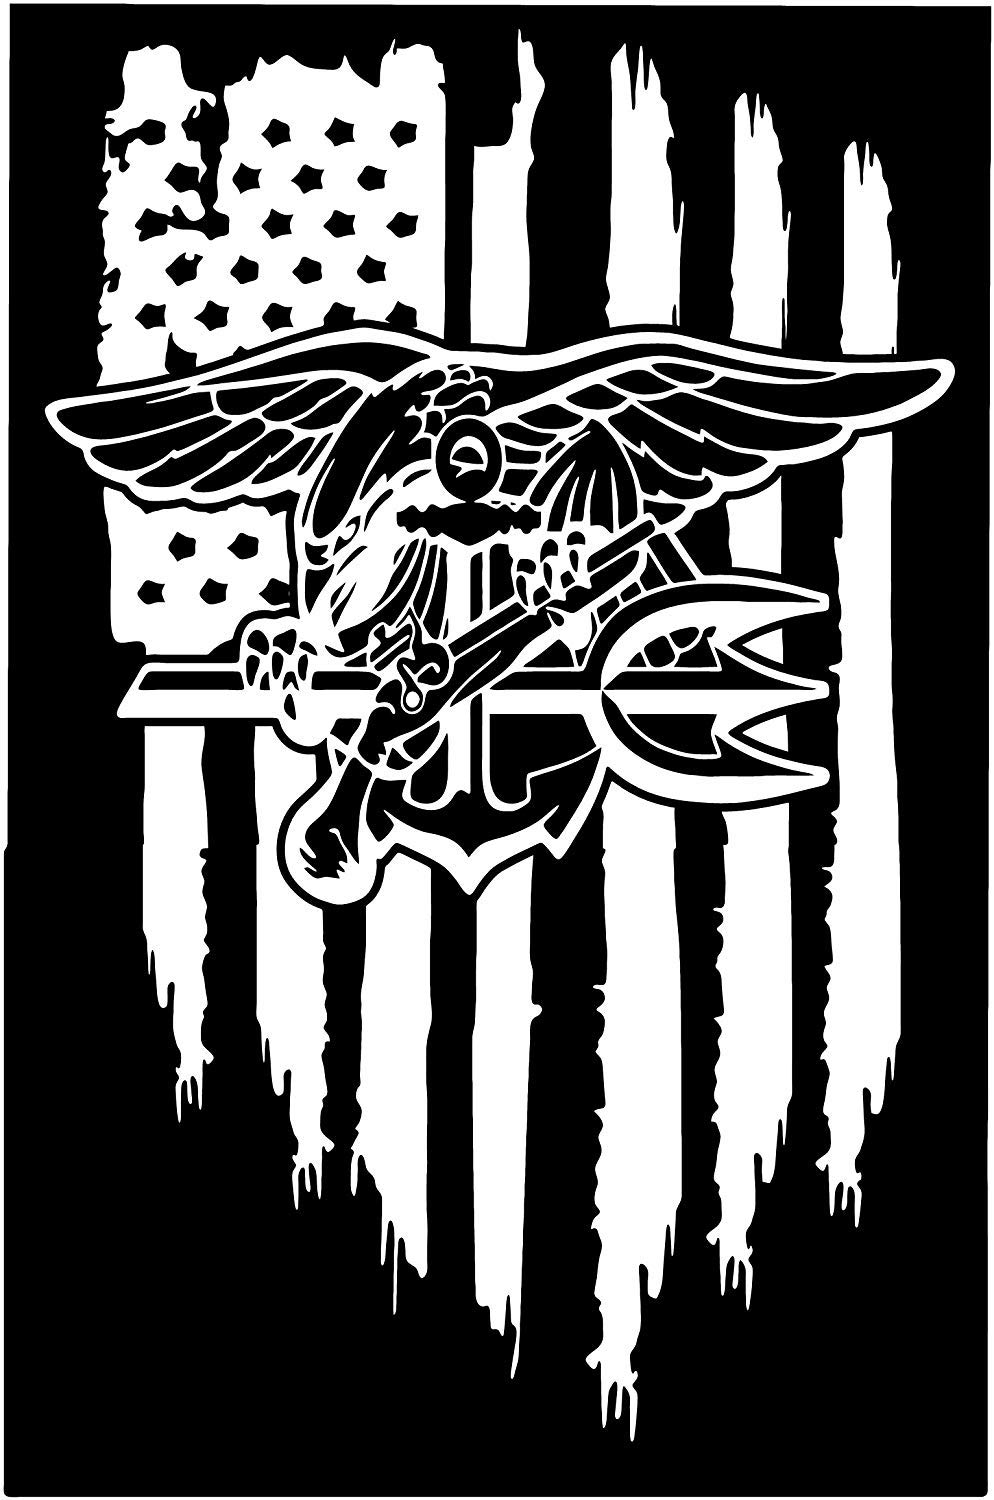 Library of us navy flag black and white vector stock png files Clipart Art 2019